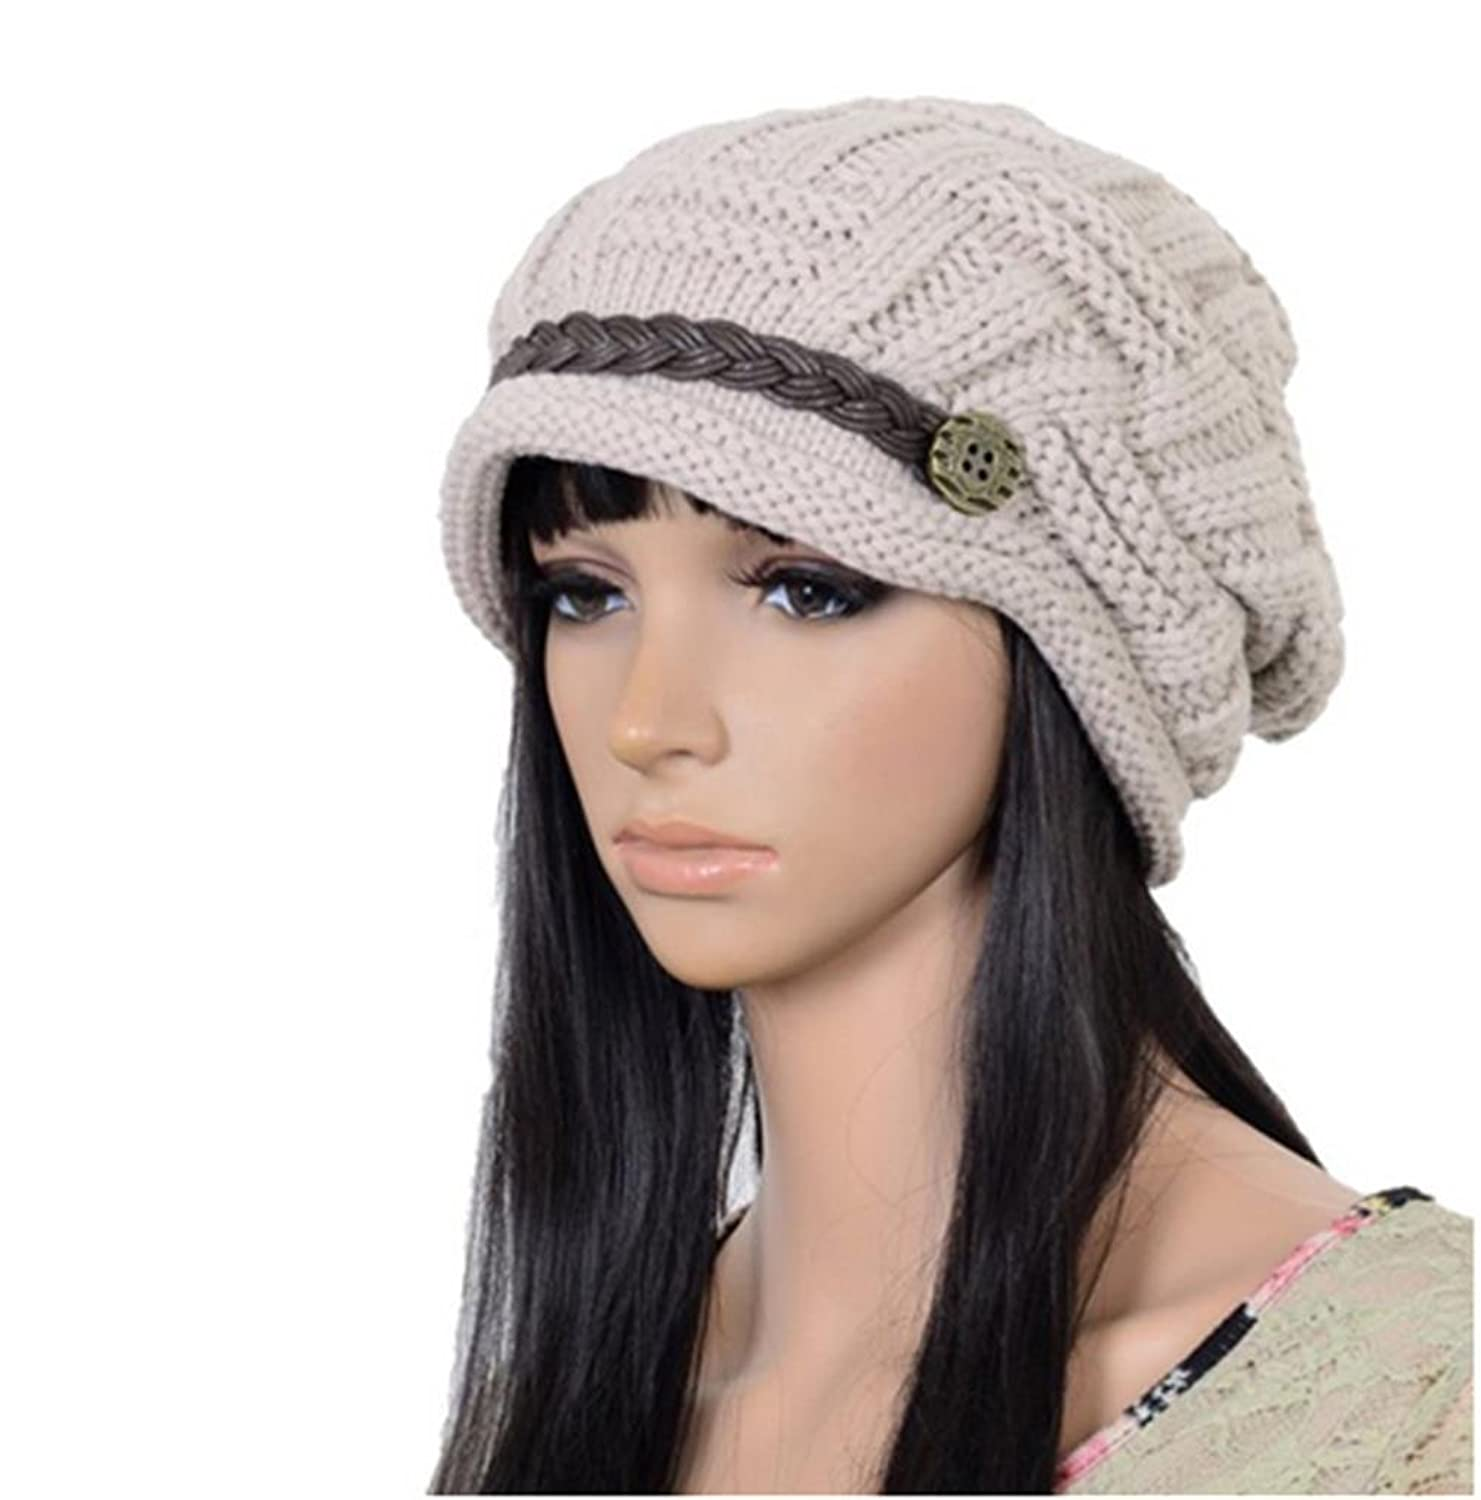 Upspirit Fashion Women Knit Snow Hat Winter Snowboarding Beanie Crochet Cap  Hats-Beige 9d4f54537ed5